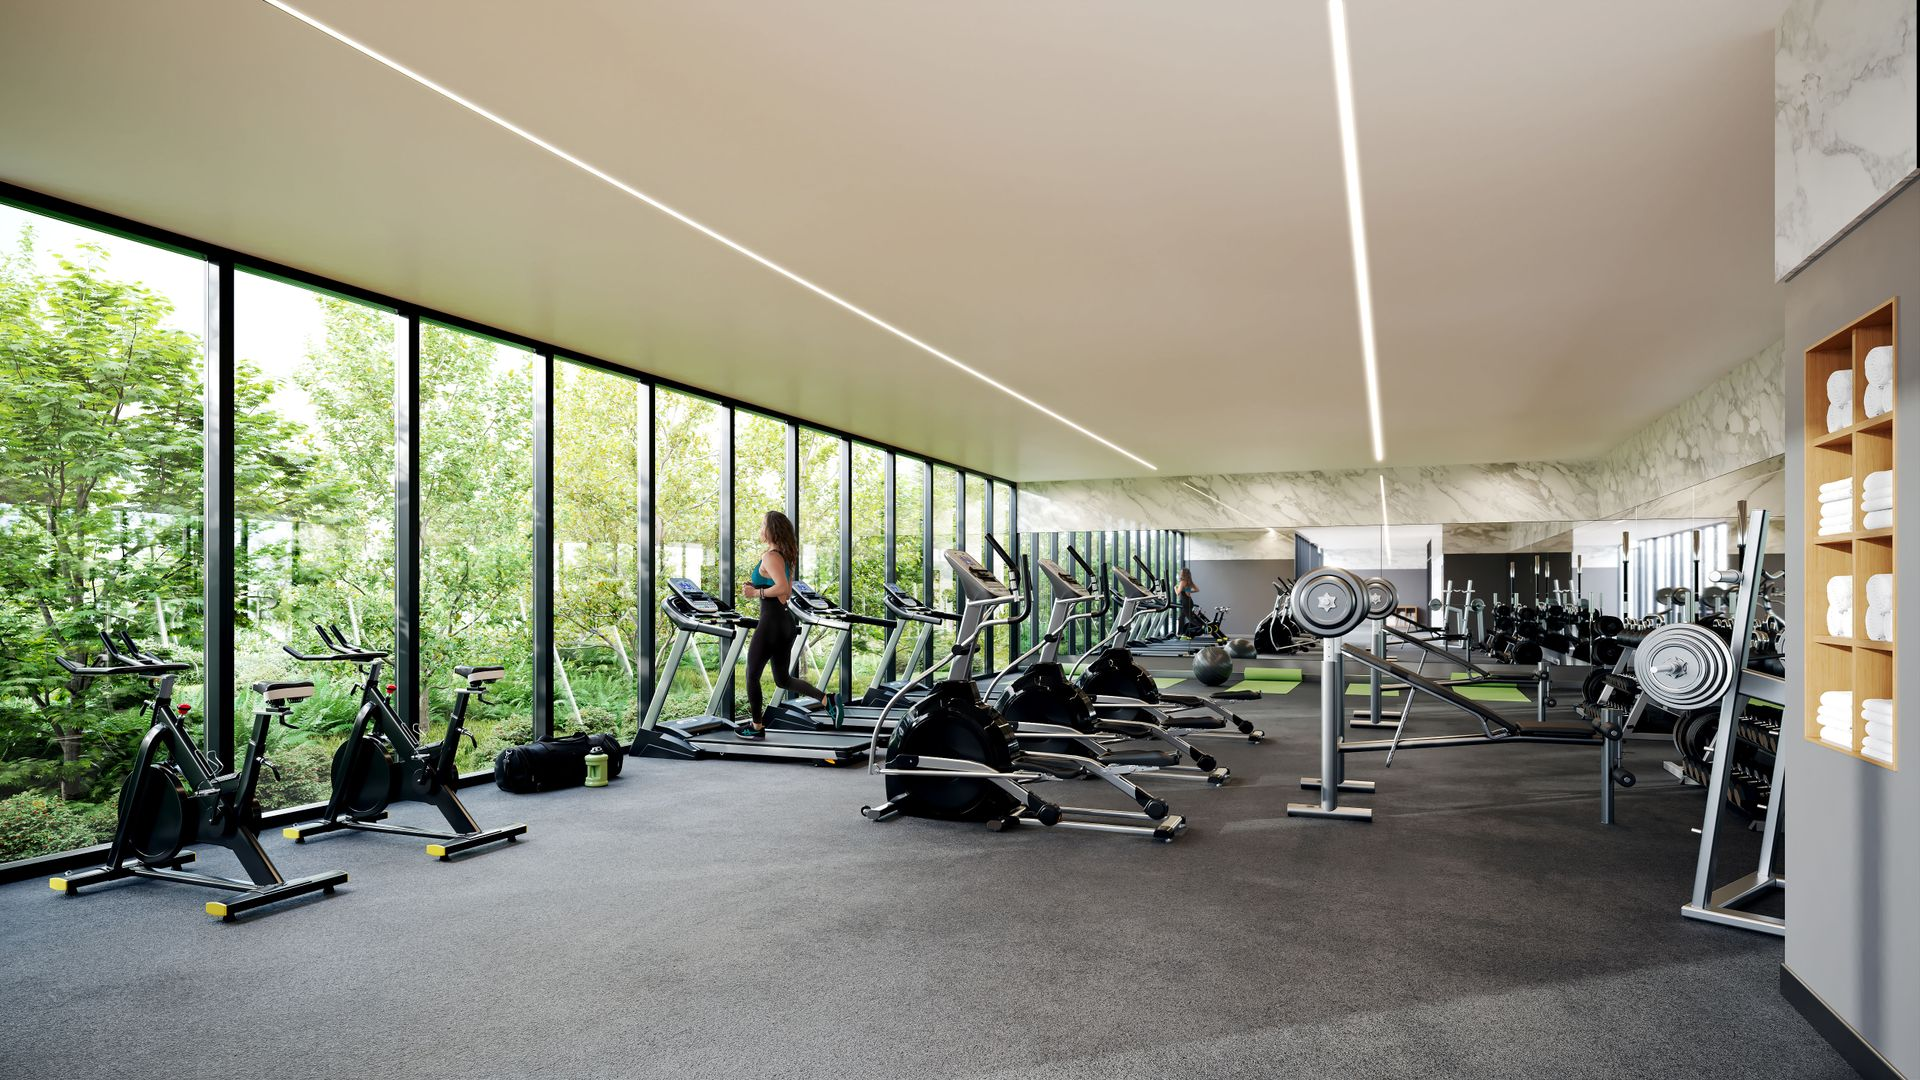 melrose-gym at Melrose Tower (10333 133 St, Surrey, Bc, Whalley, North Surrey)